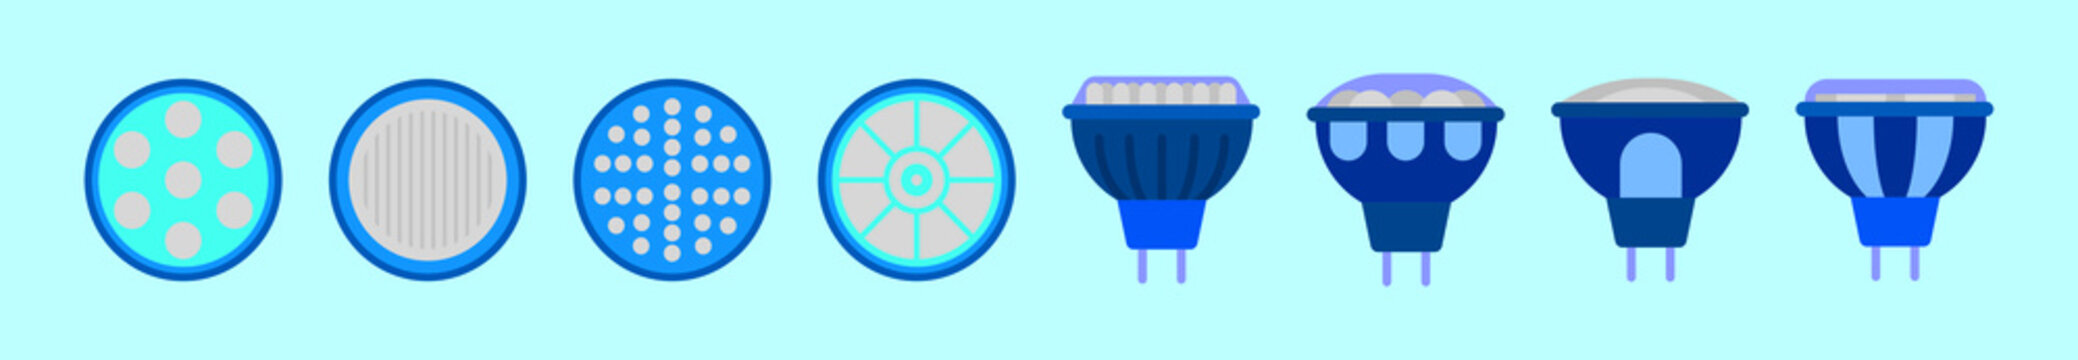 set of light blub cartoon icon design template with various models. vector illustration isolated on blue background